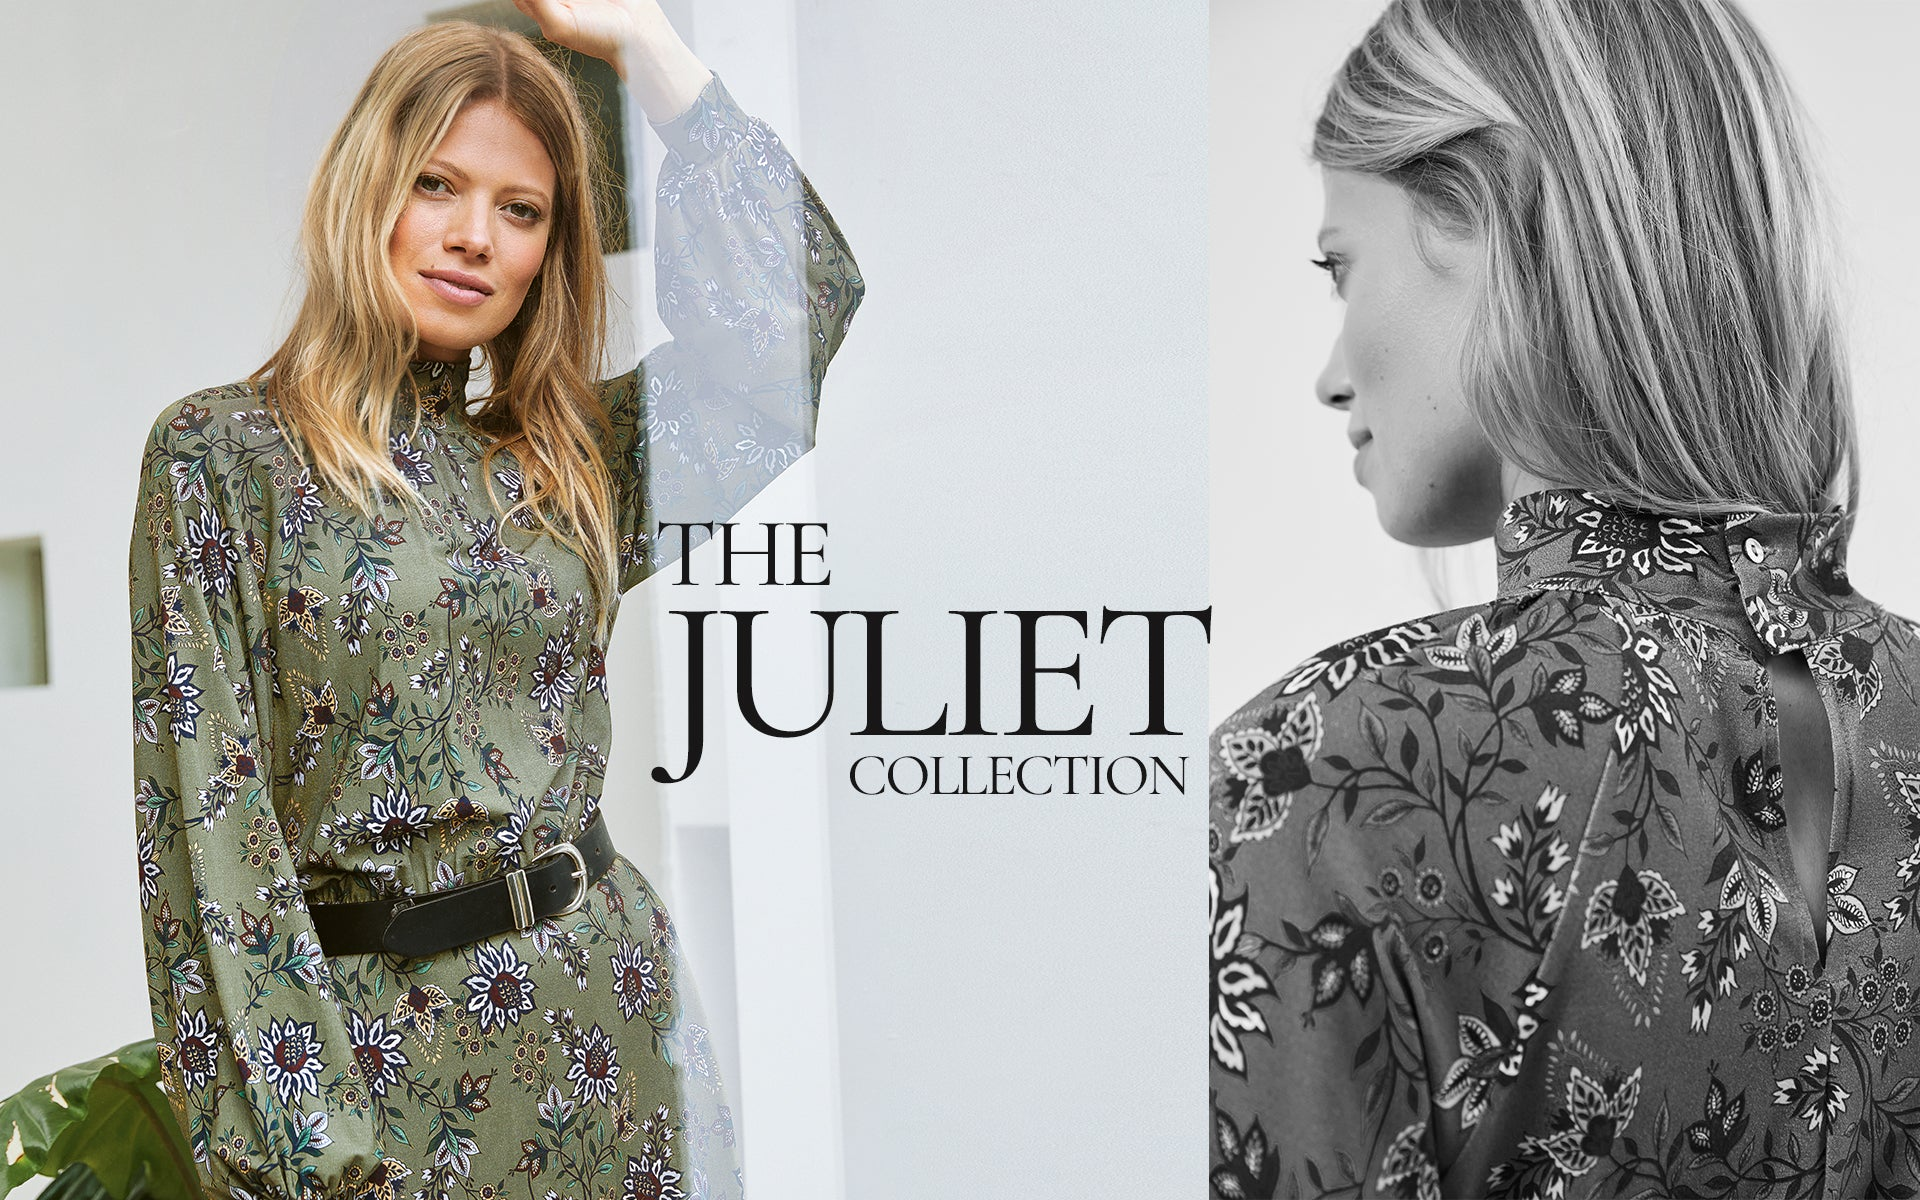 The Juliette Collection